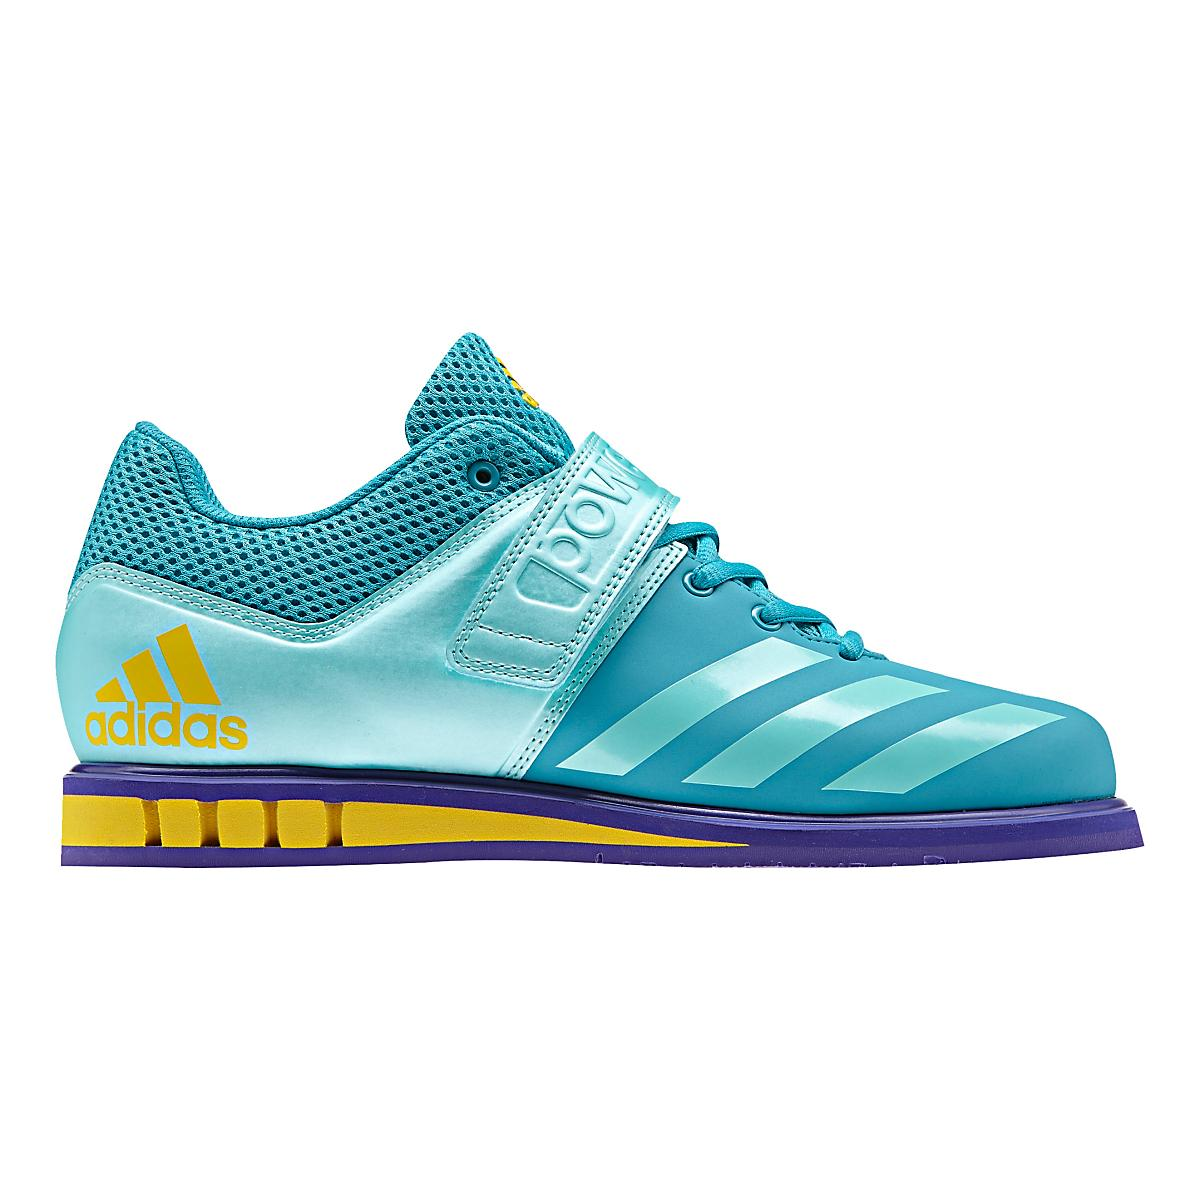 054351a700f6 Womens adidas Powerlift 3.1 Cross Training Shoe at Road Runner Sports